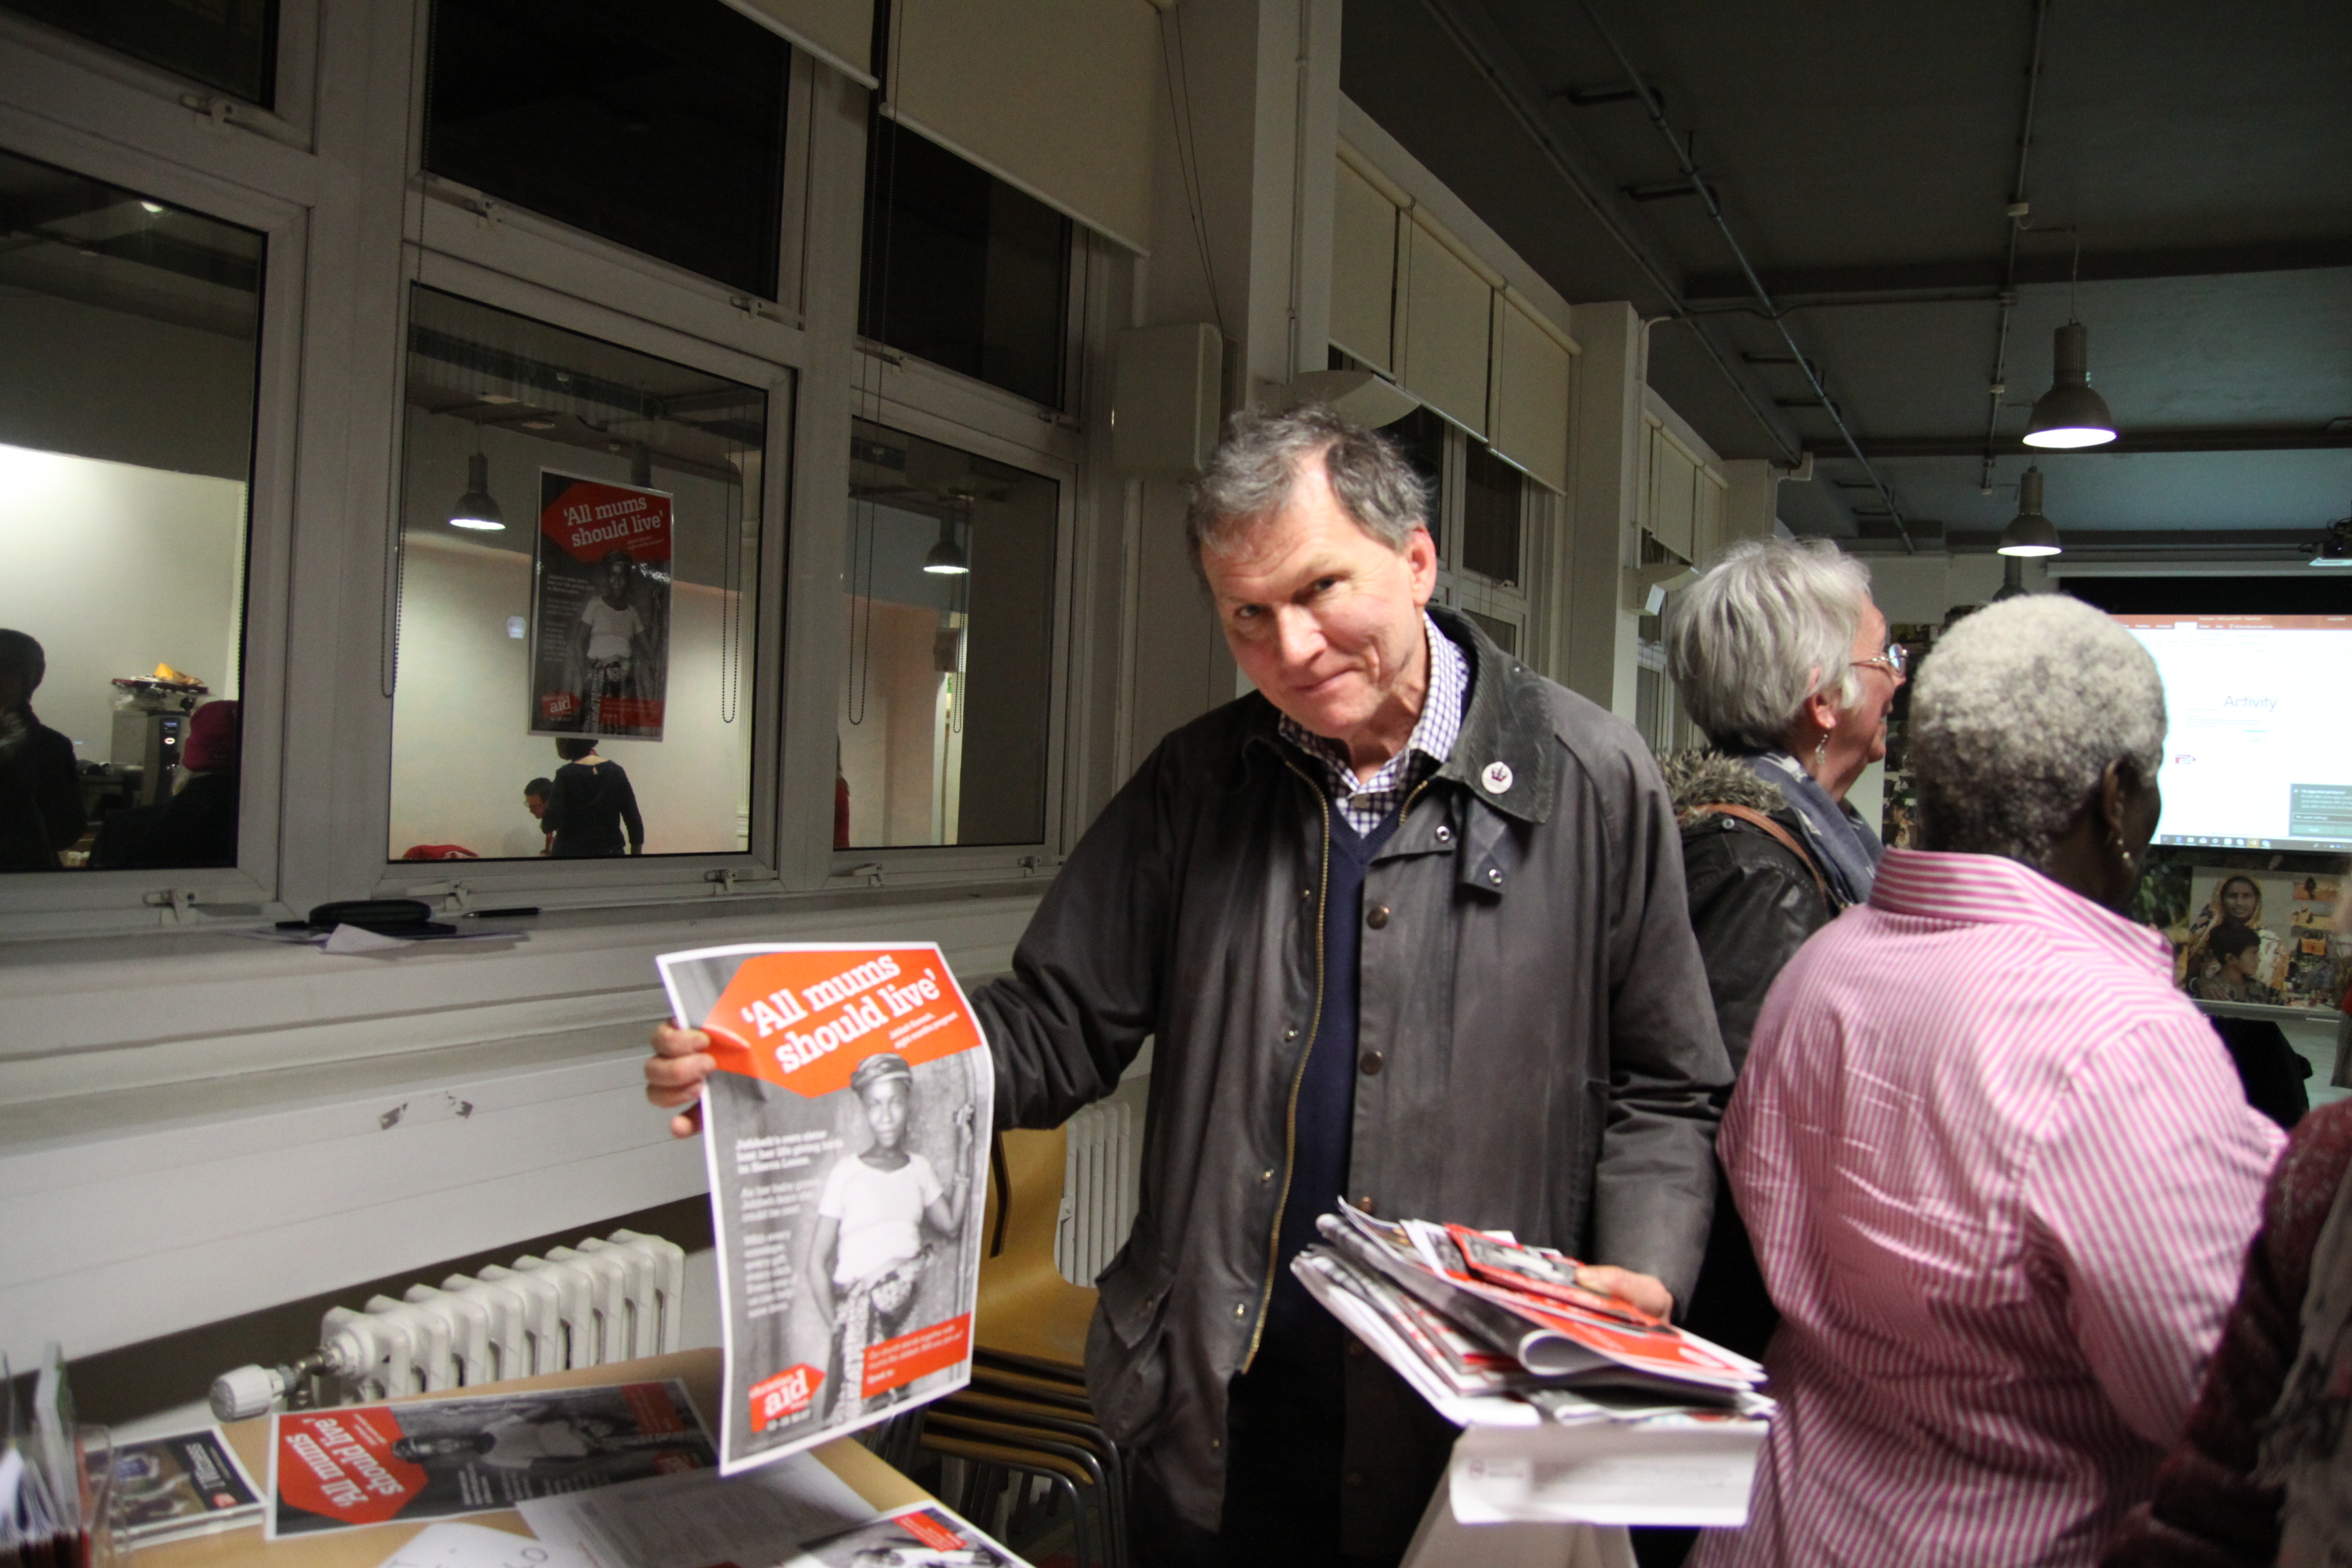 Our Richmond & Kew Christian Aid Group Organiser picks up some sample resources for Christian Aid Week 2019